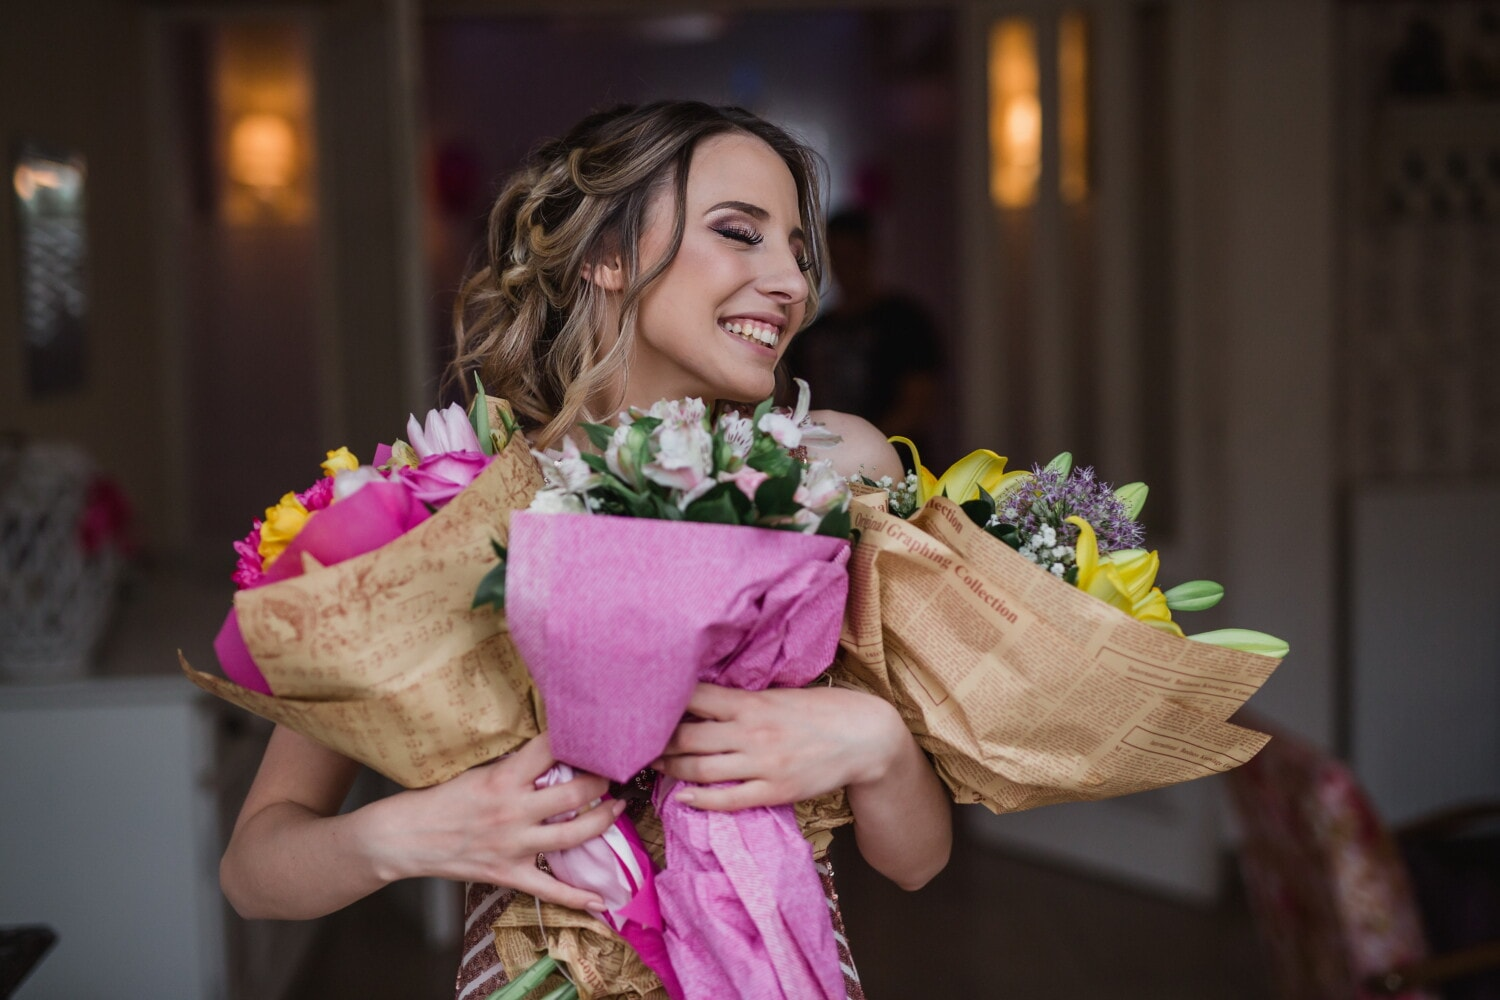 gifts, flowers, young woman, enjoyment, smiling, happiness, cheerful, woman, wedding, fashion